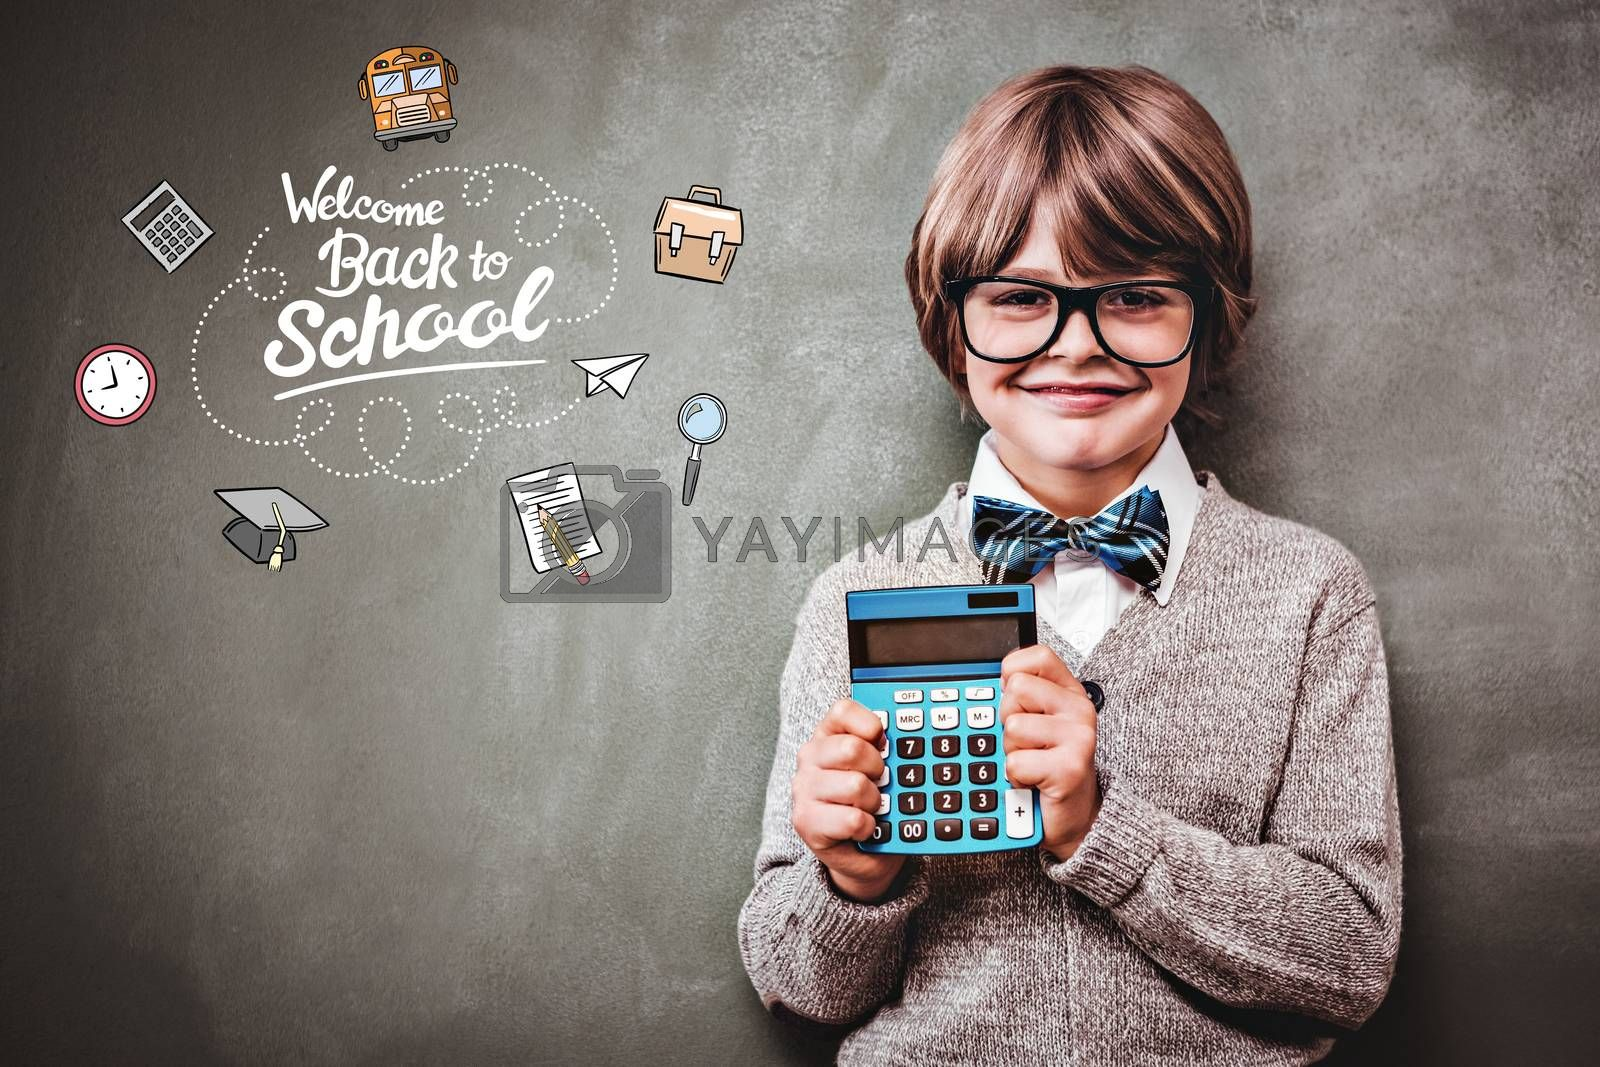 back to school against portrait of cute little boy holding calculator